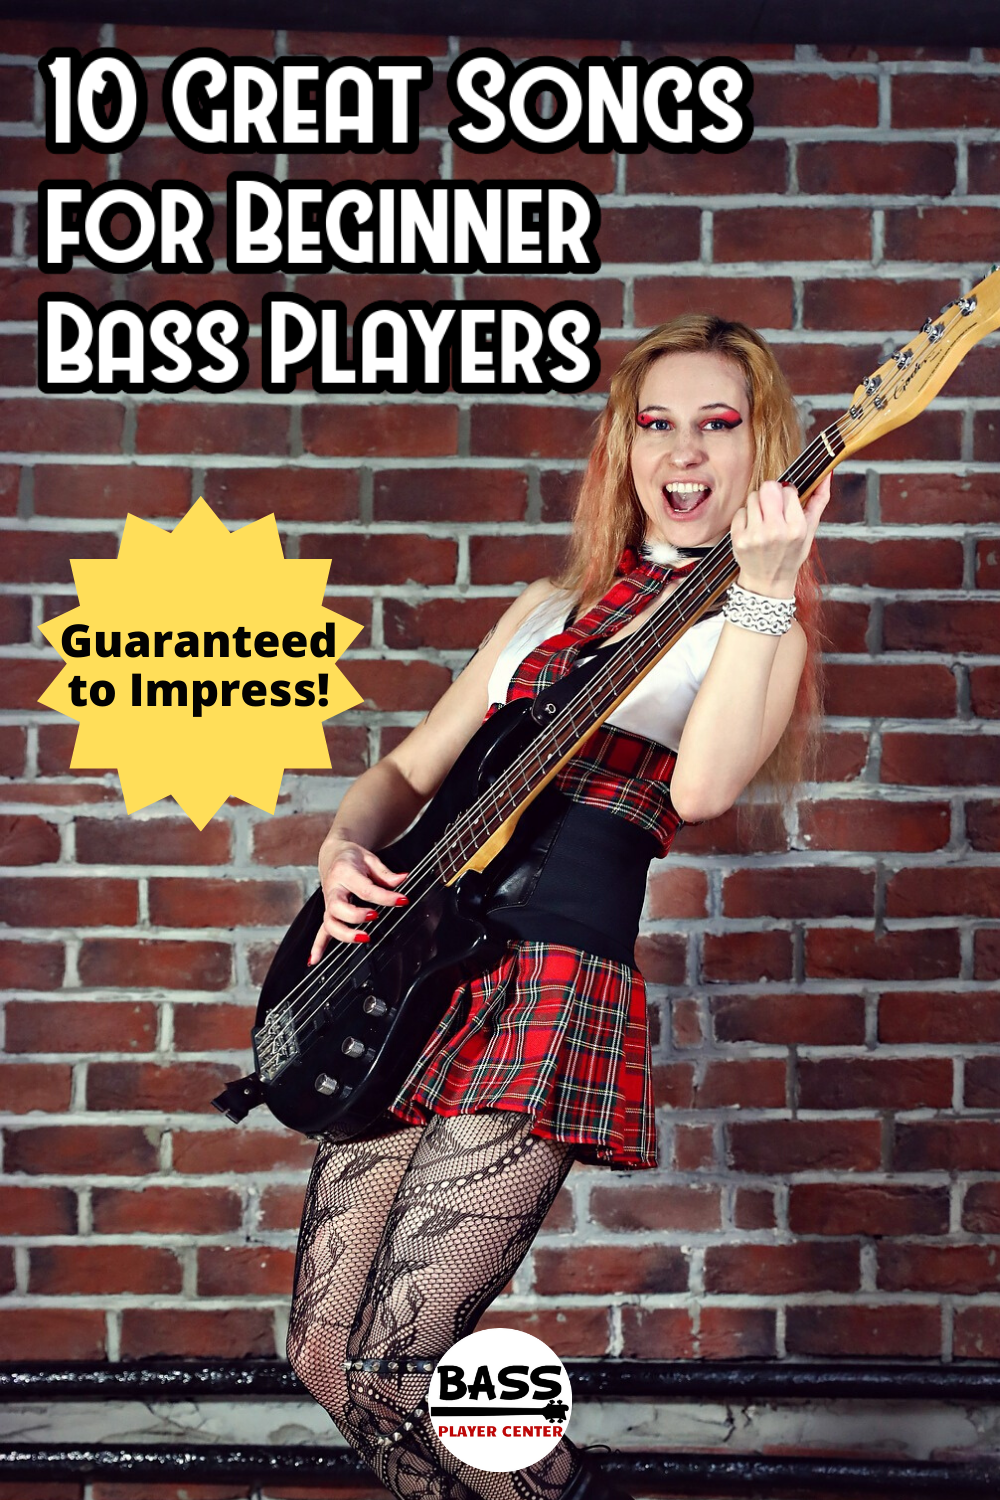 10 Great Songs for Beginner Bass Players